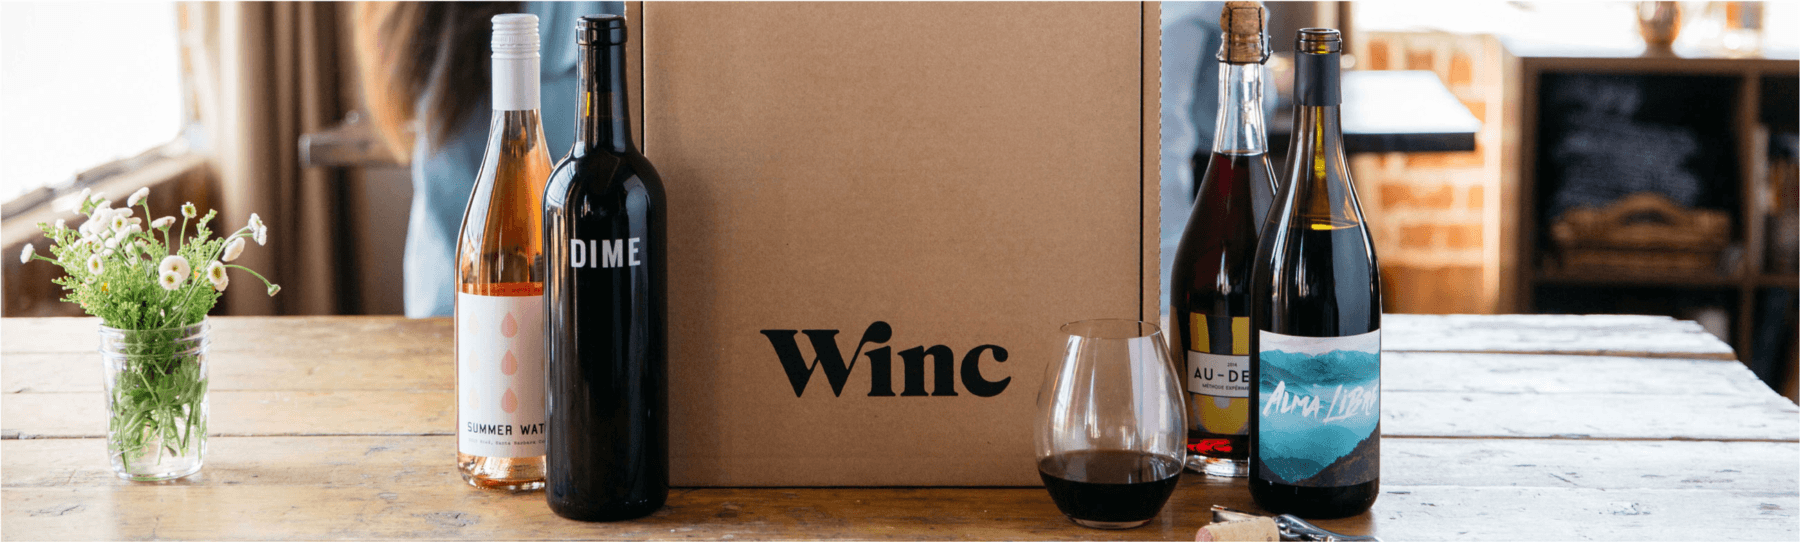 Winc Gift Cards = Perfect Last Minute Gift + Coupons!